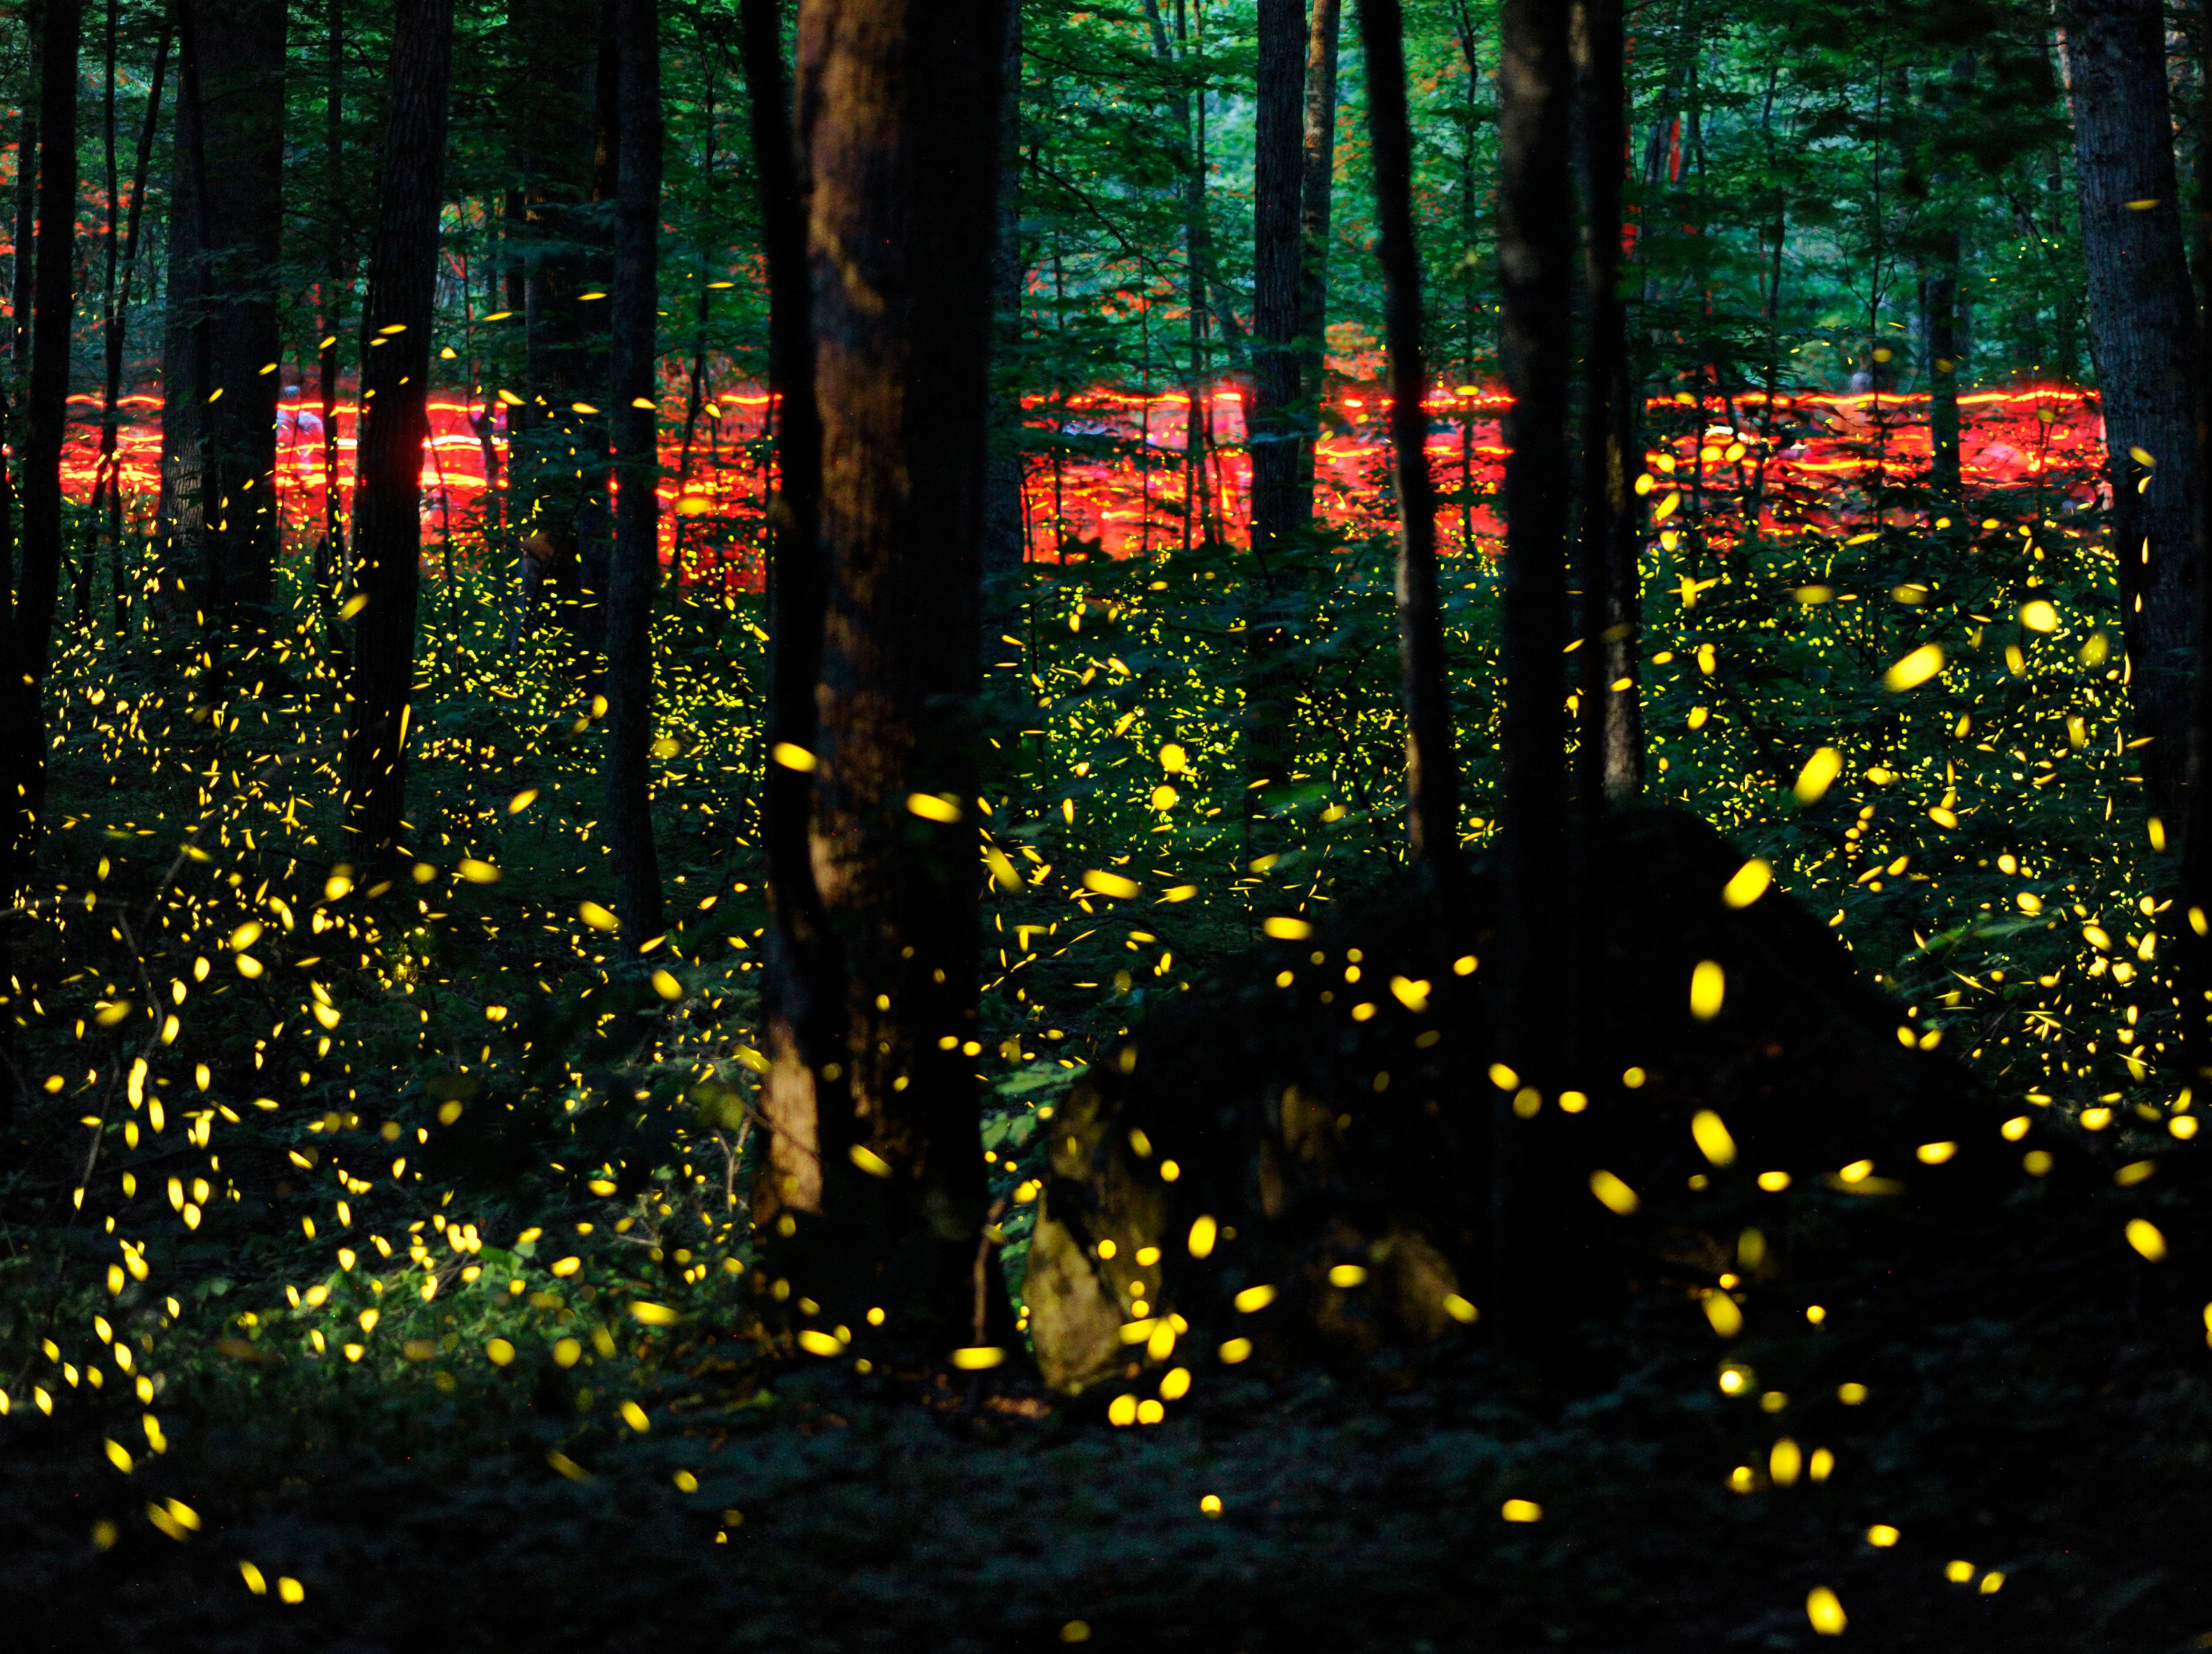 Foot traffic accompanies air traffic, as attract human visitors  carrying red flashlights walk the Little River Trail to observe synchronous fireflies in their annual mating ritual in the Great Smoky Mountains National Park's Elkmont Campground on Tuesday, June 3, 2014. Fireflies' peak flashing lasts about two weeks, with people's subsiding soon after.